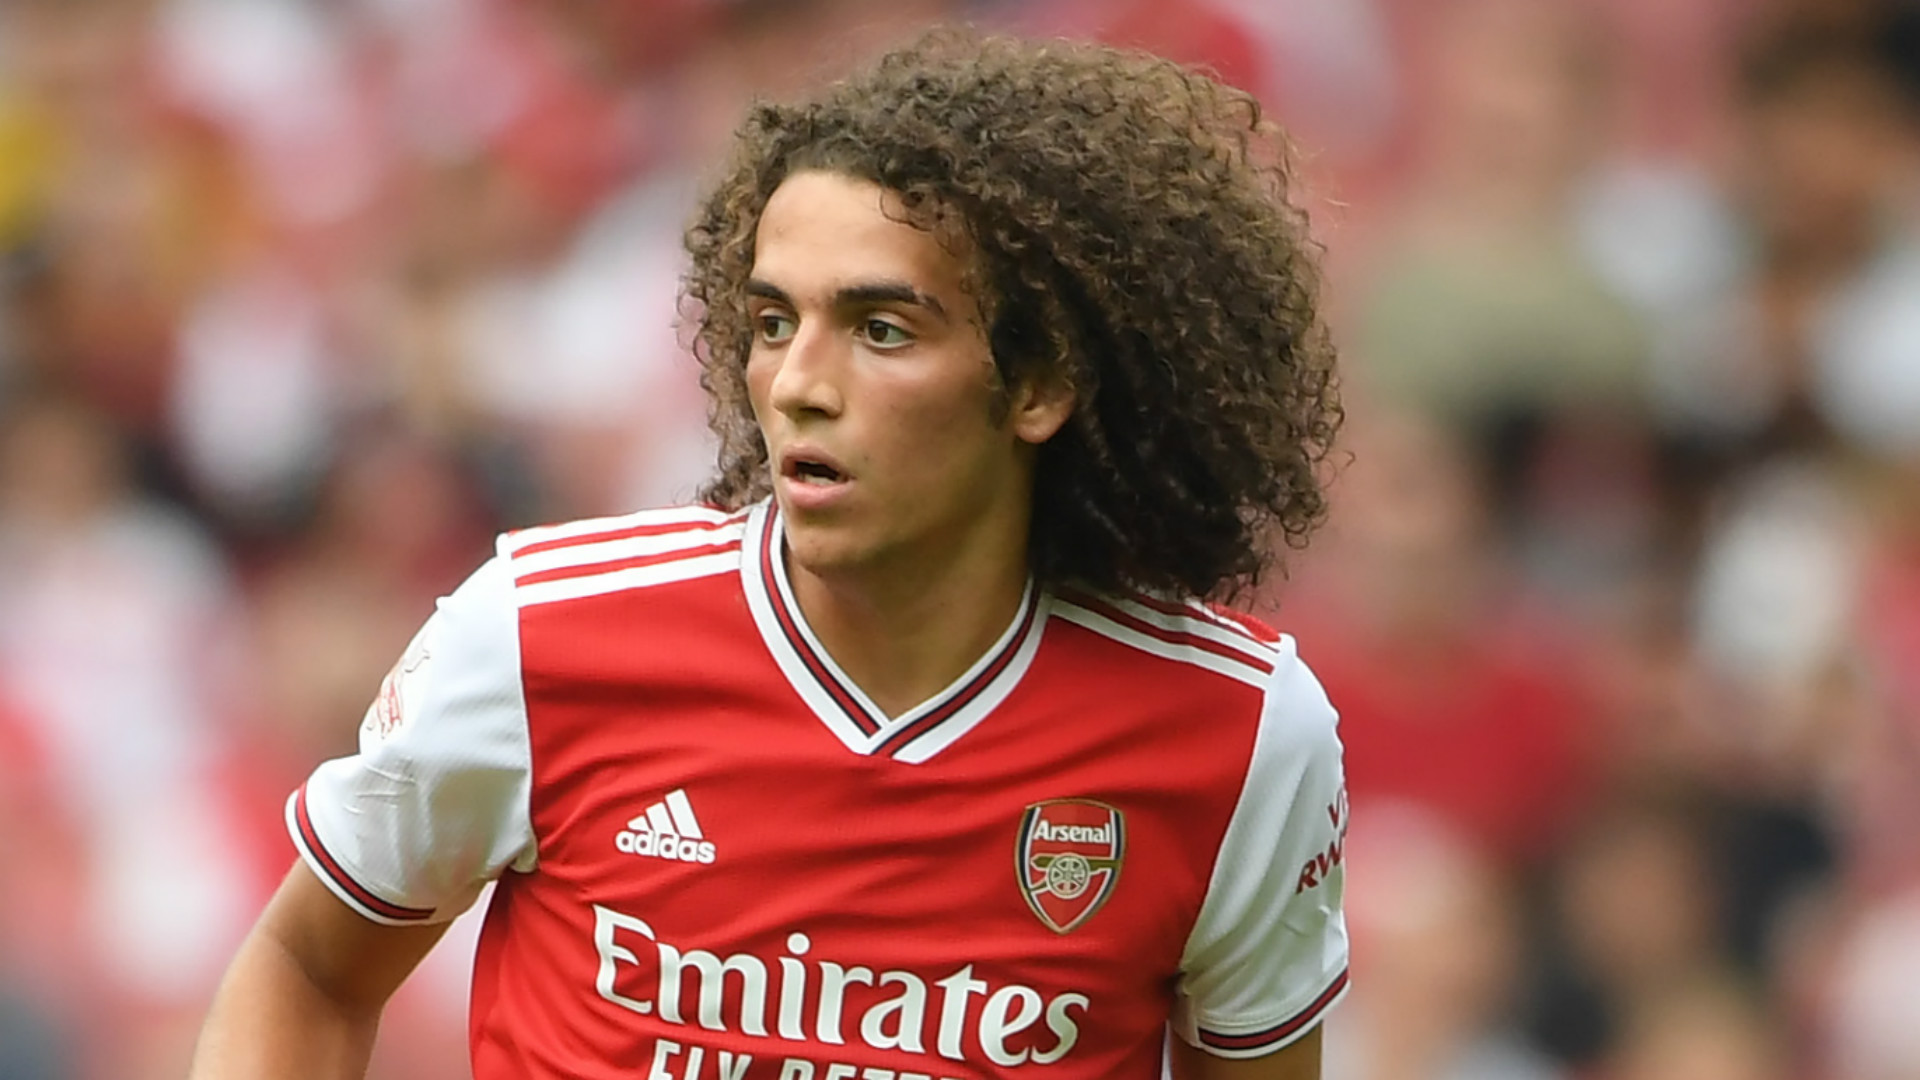 Guendouzi determined to take big chance after 'massive improvement' at Arsenal